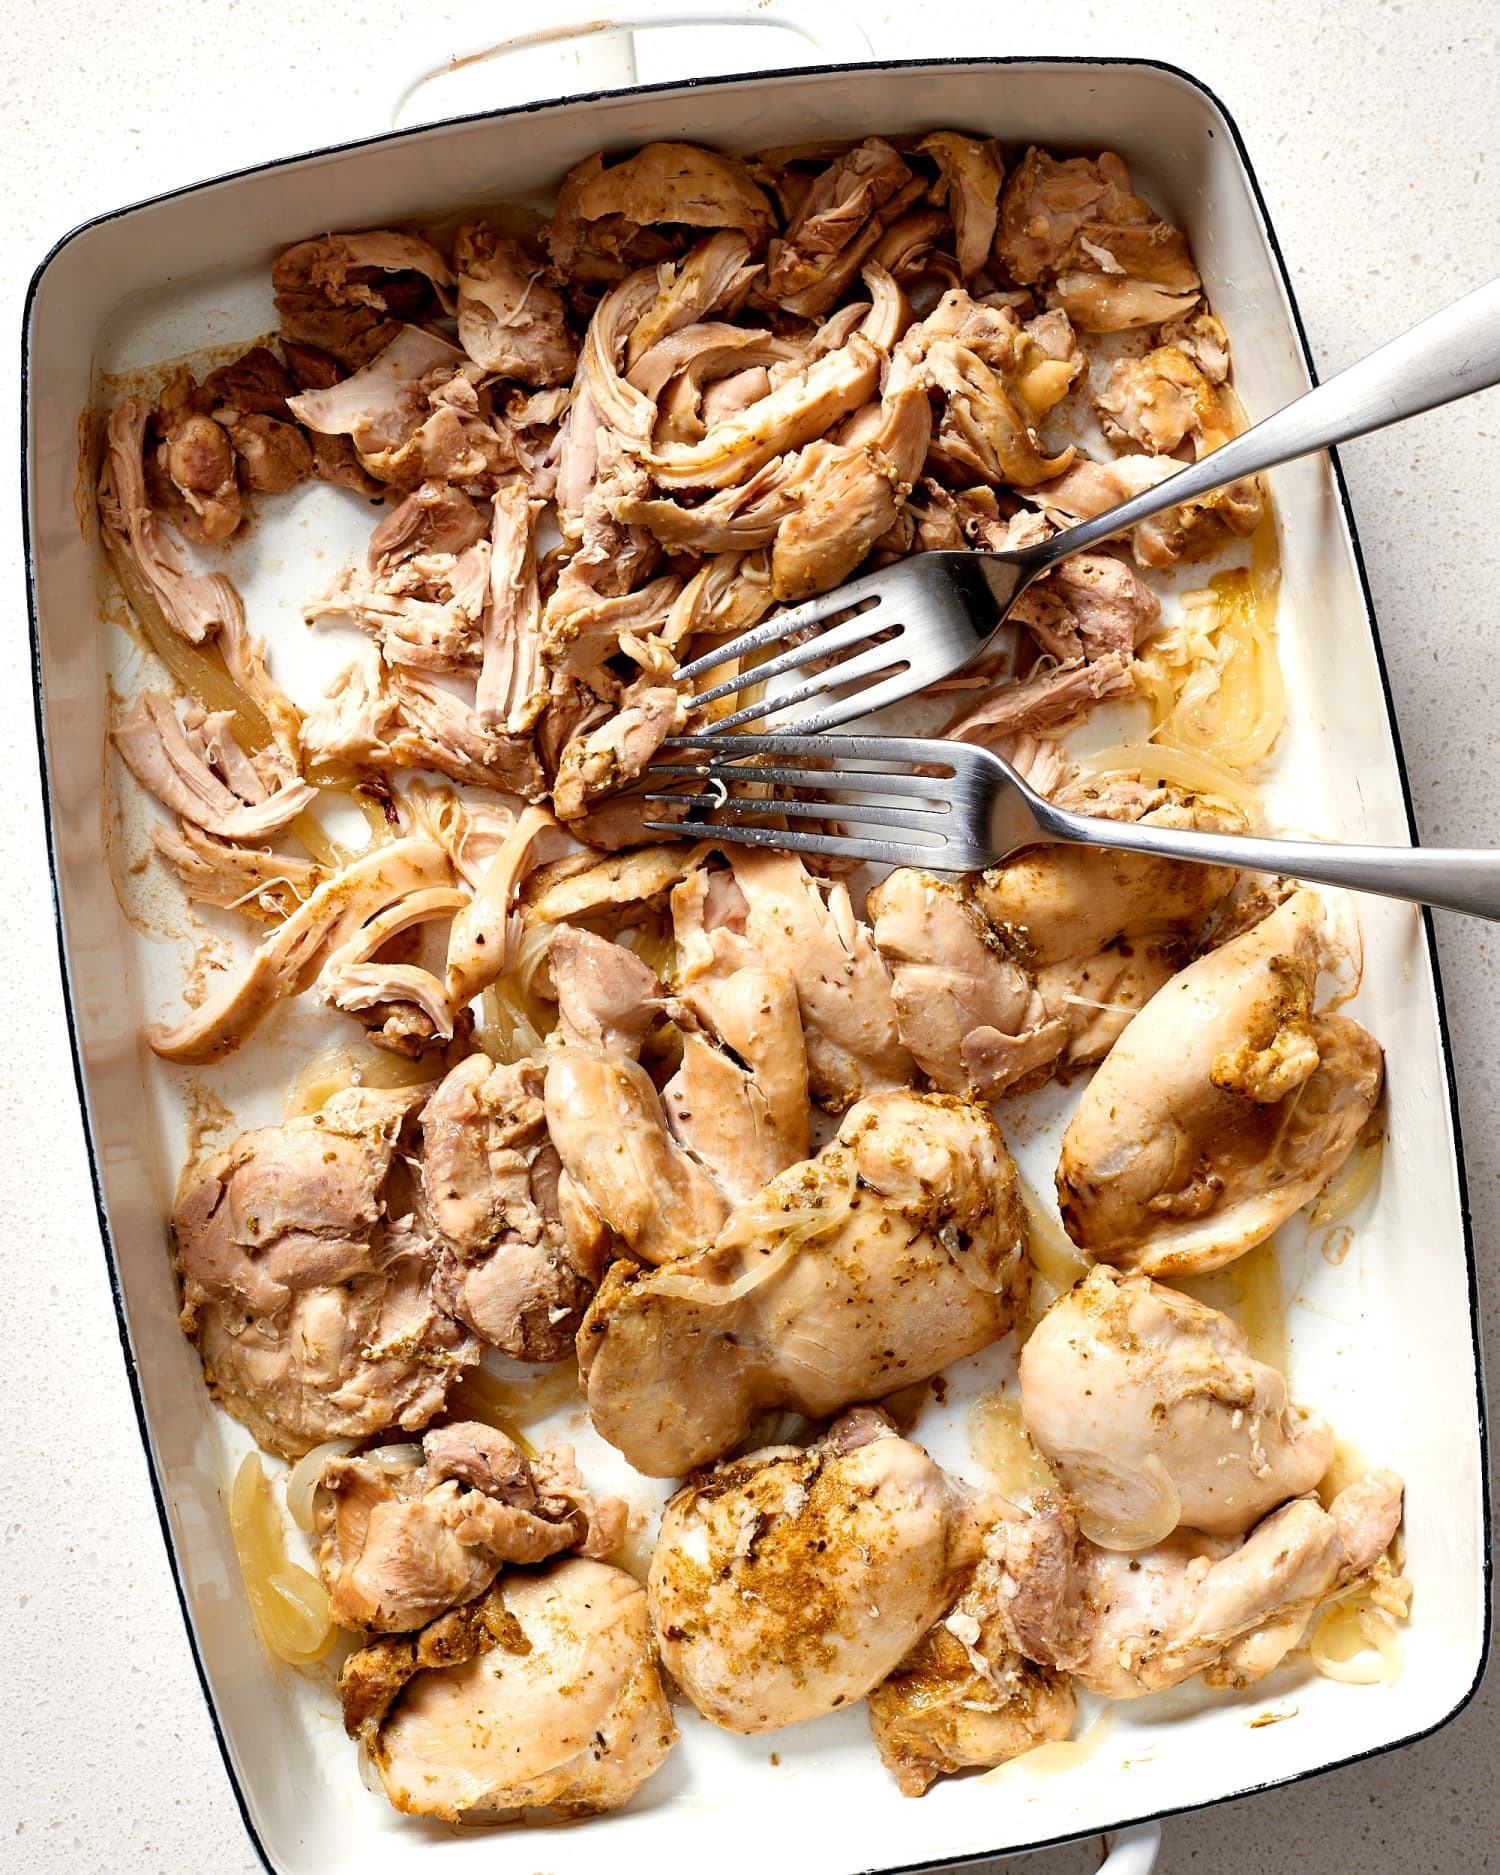 10 Delicious Keto-Friendly Chicken Recipes to Make Right Now